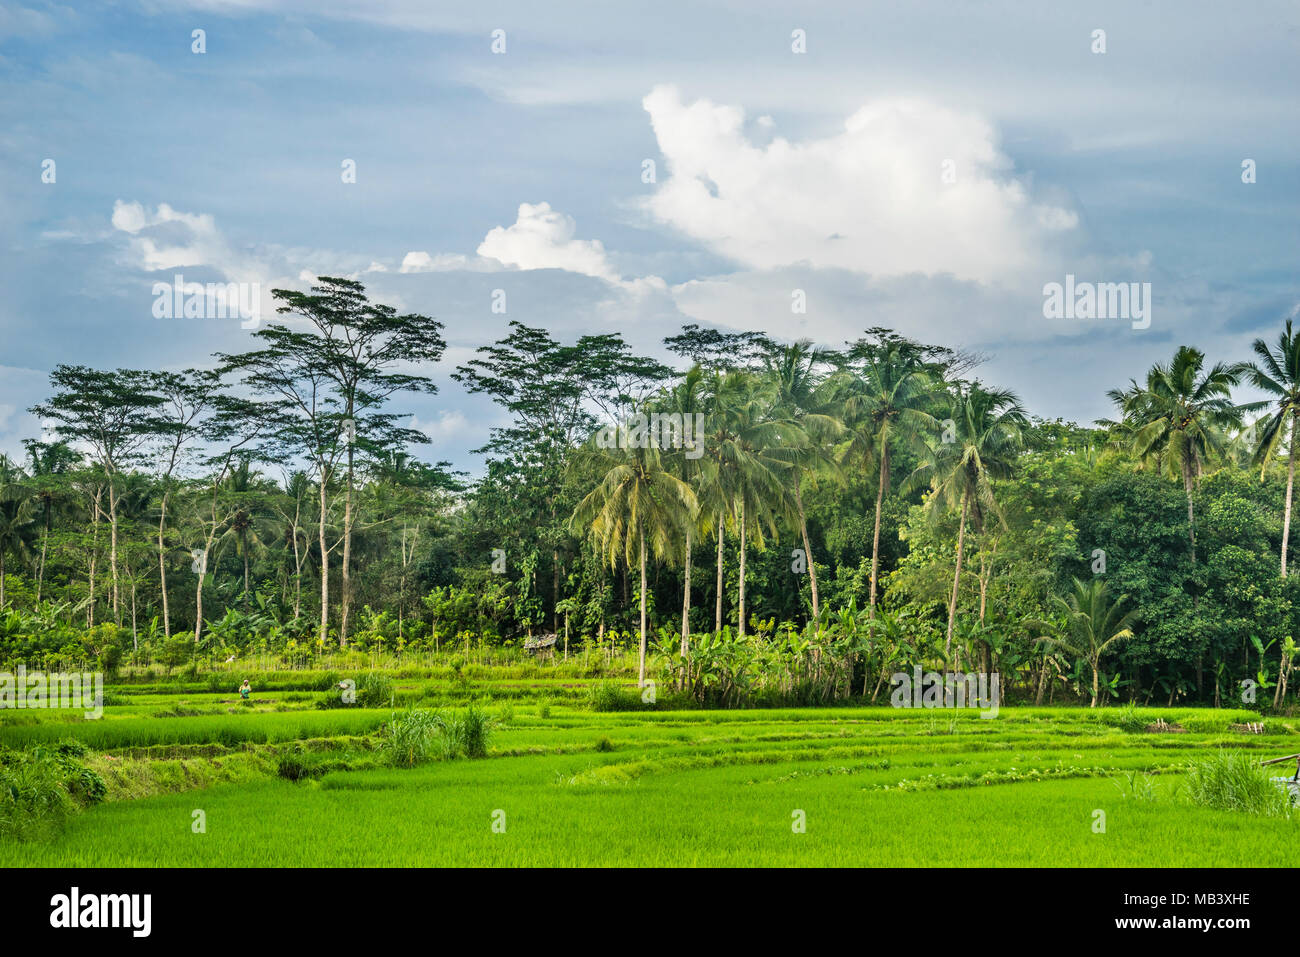 fertile rural countryside in the Kedu Plain west of Borobudur, Central Java, Indonesia - Stock Image